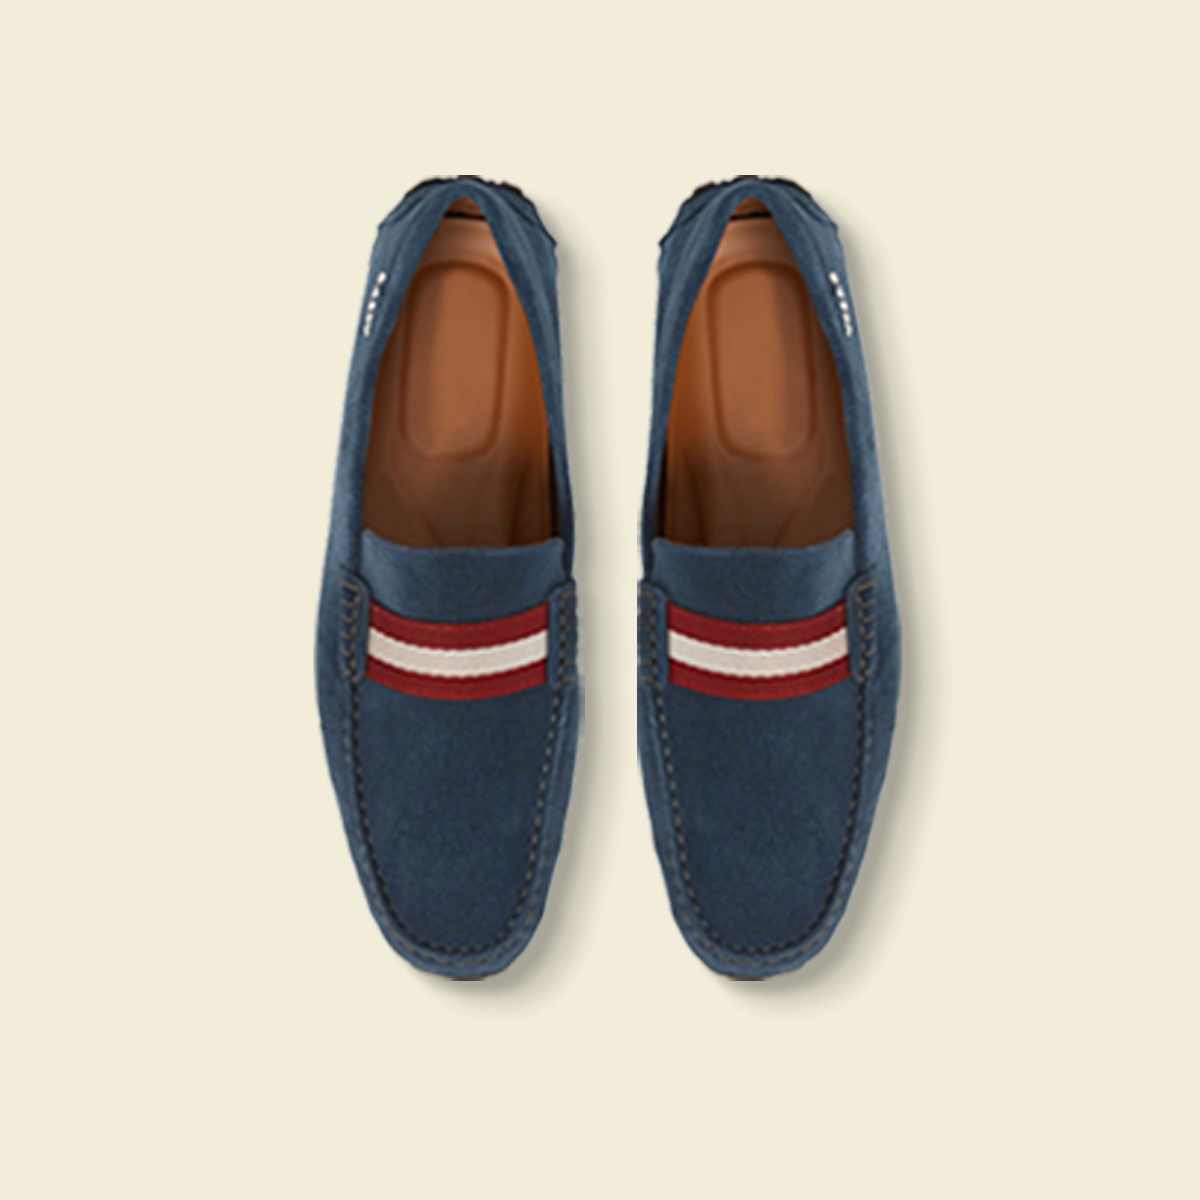 Navy driving shoes with a red stripe.